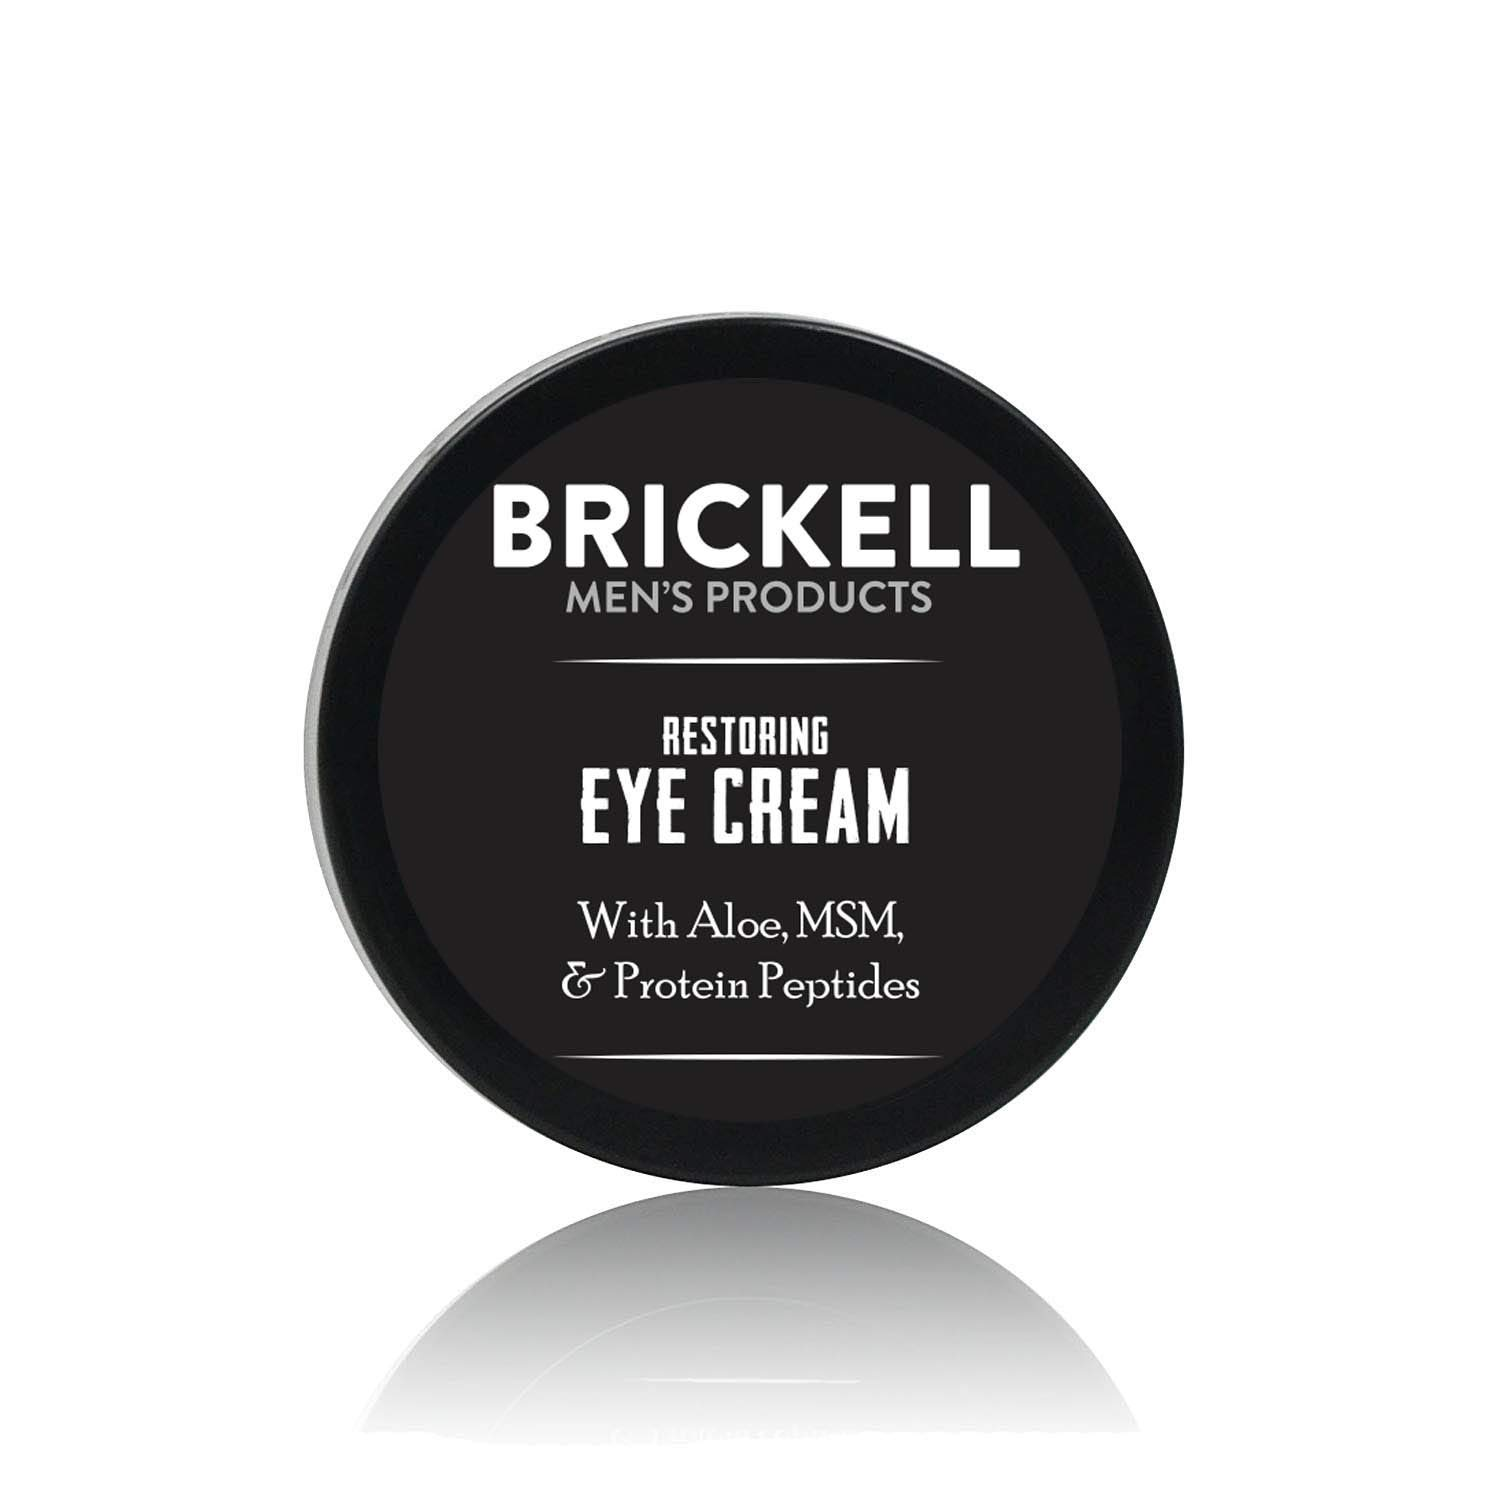 Brickell Men's Restoring Eye Cream for Men, Natural and Organic Anti Aging Eye Balm To Reduce Puffiness, Wrinkles, Dark Circles, Crows Feet and Under Eye Bags, .5 Ounce, Unscented: Beauty